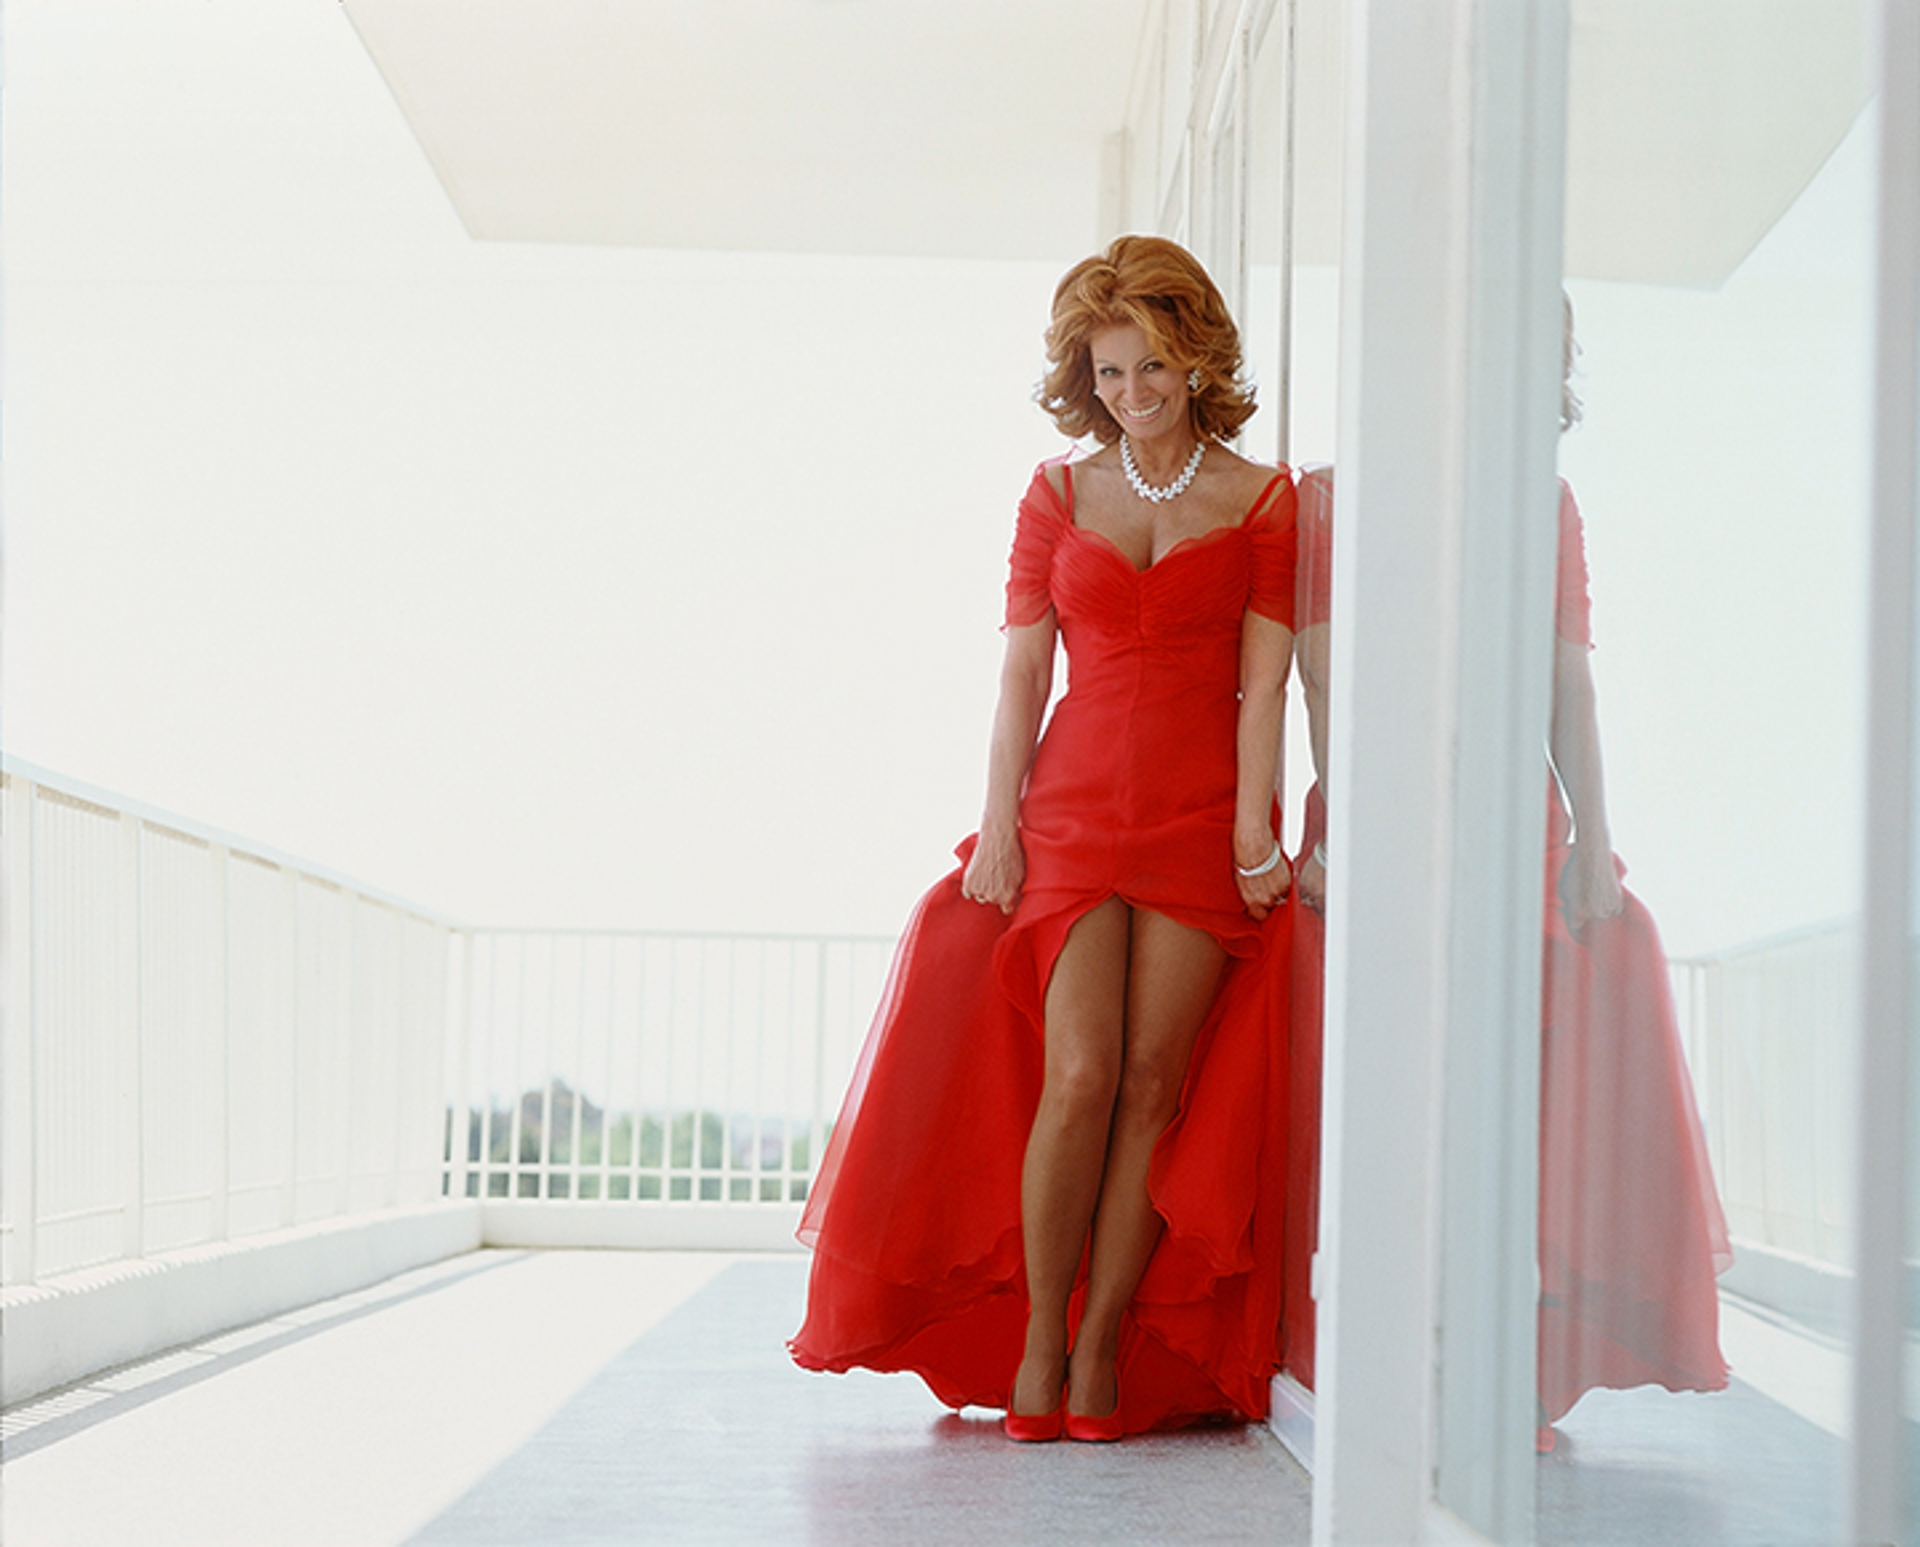 99023 Sophia Loren Leaning in Red Dress Color by Timothy White